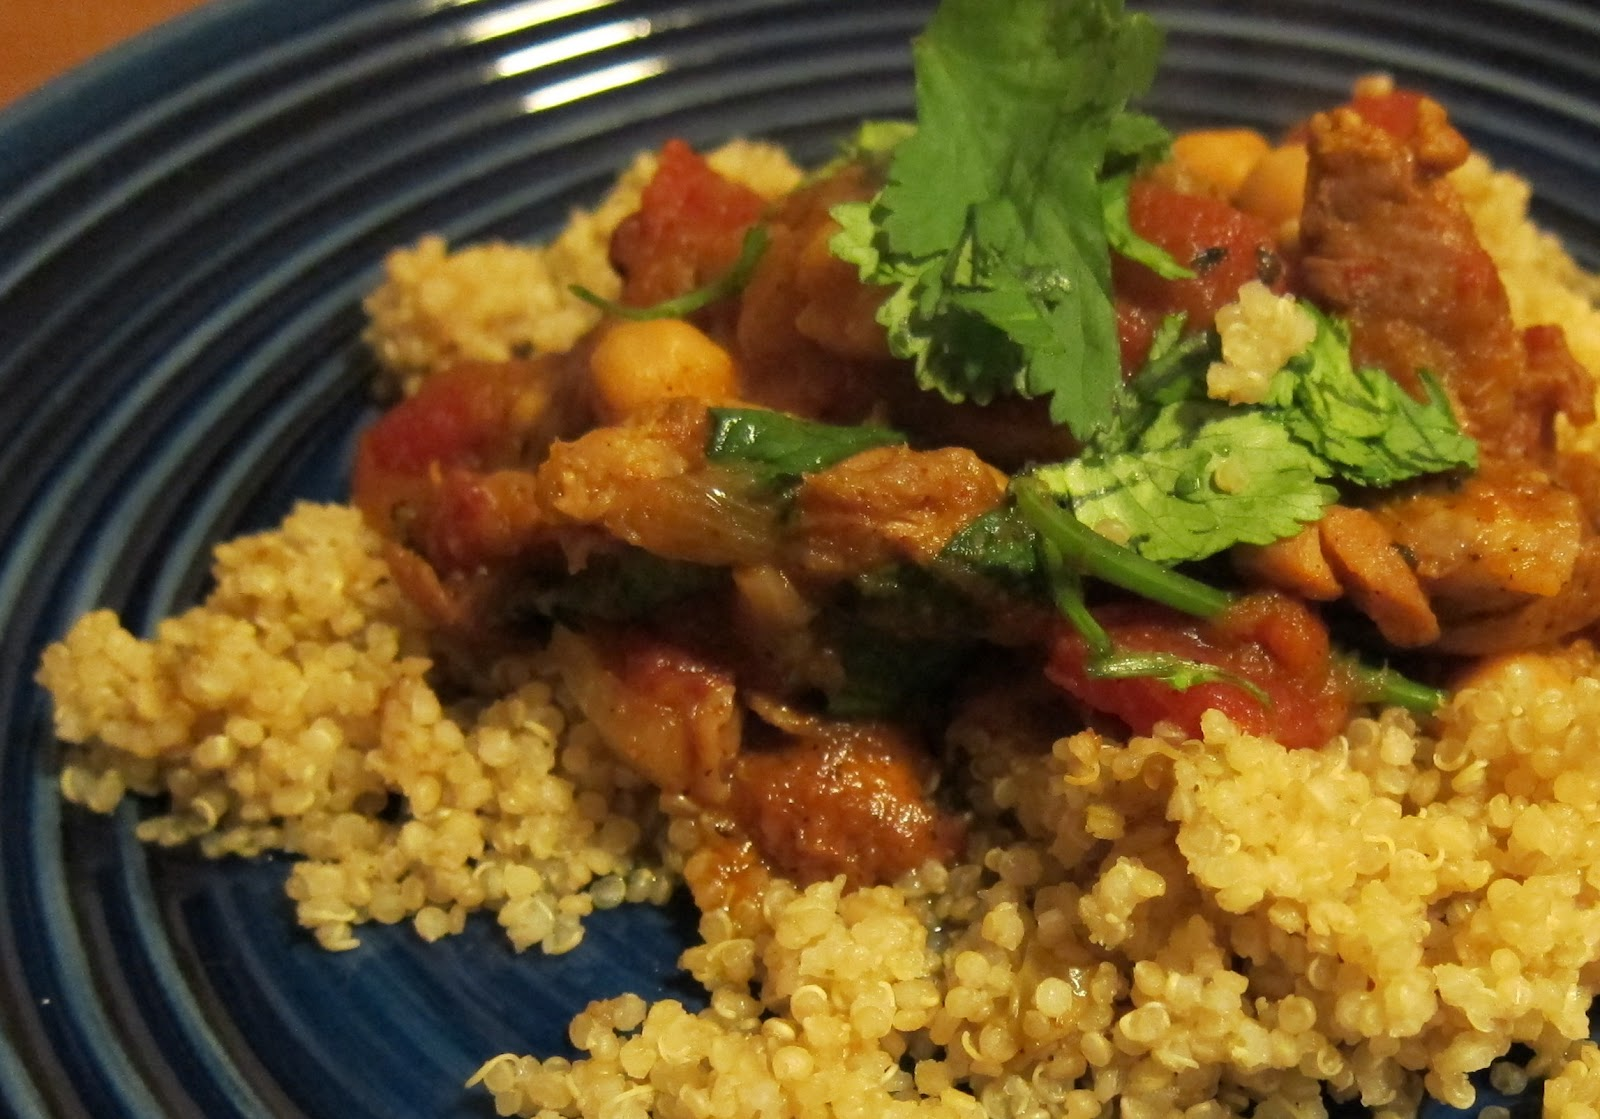 ... Project: Moroccan Chicken, Chickpea, and Caramelized Vegetable Tagine